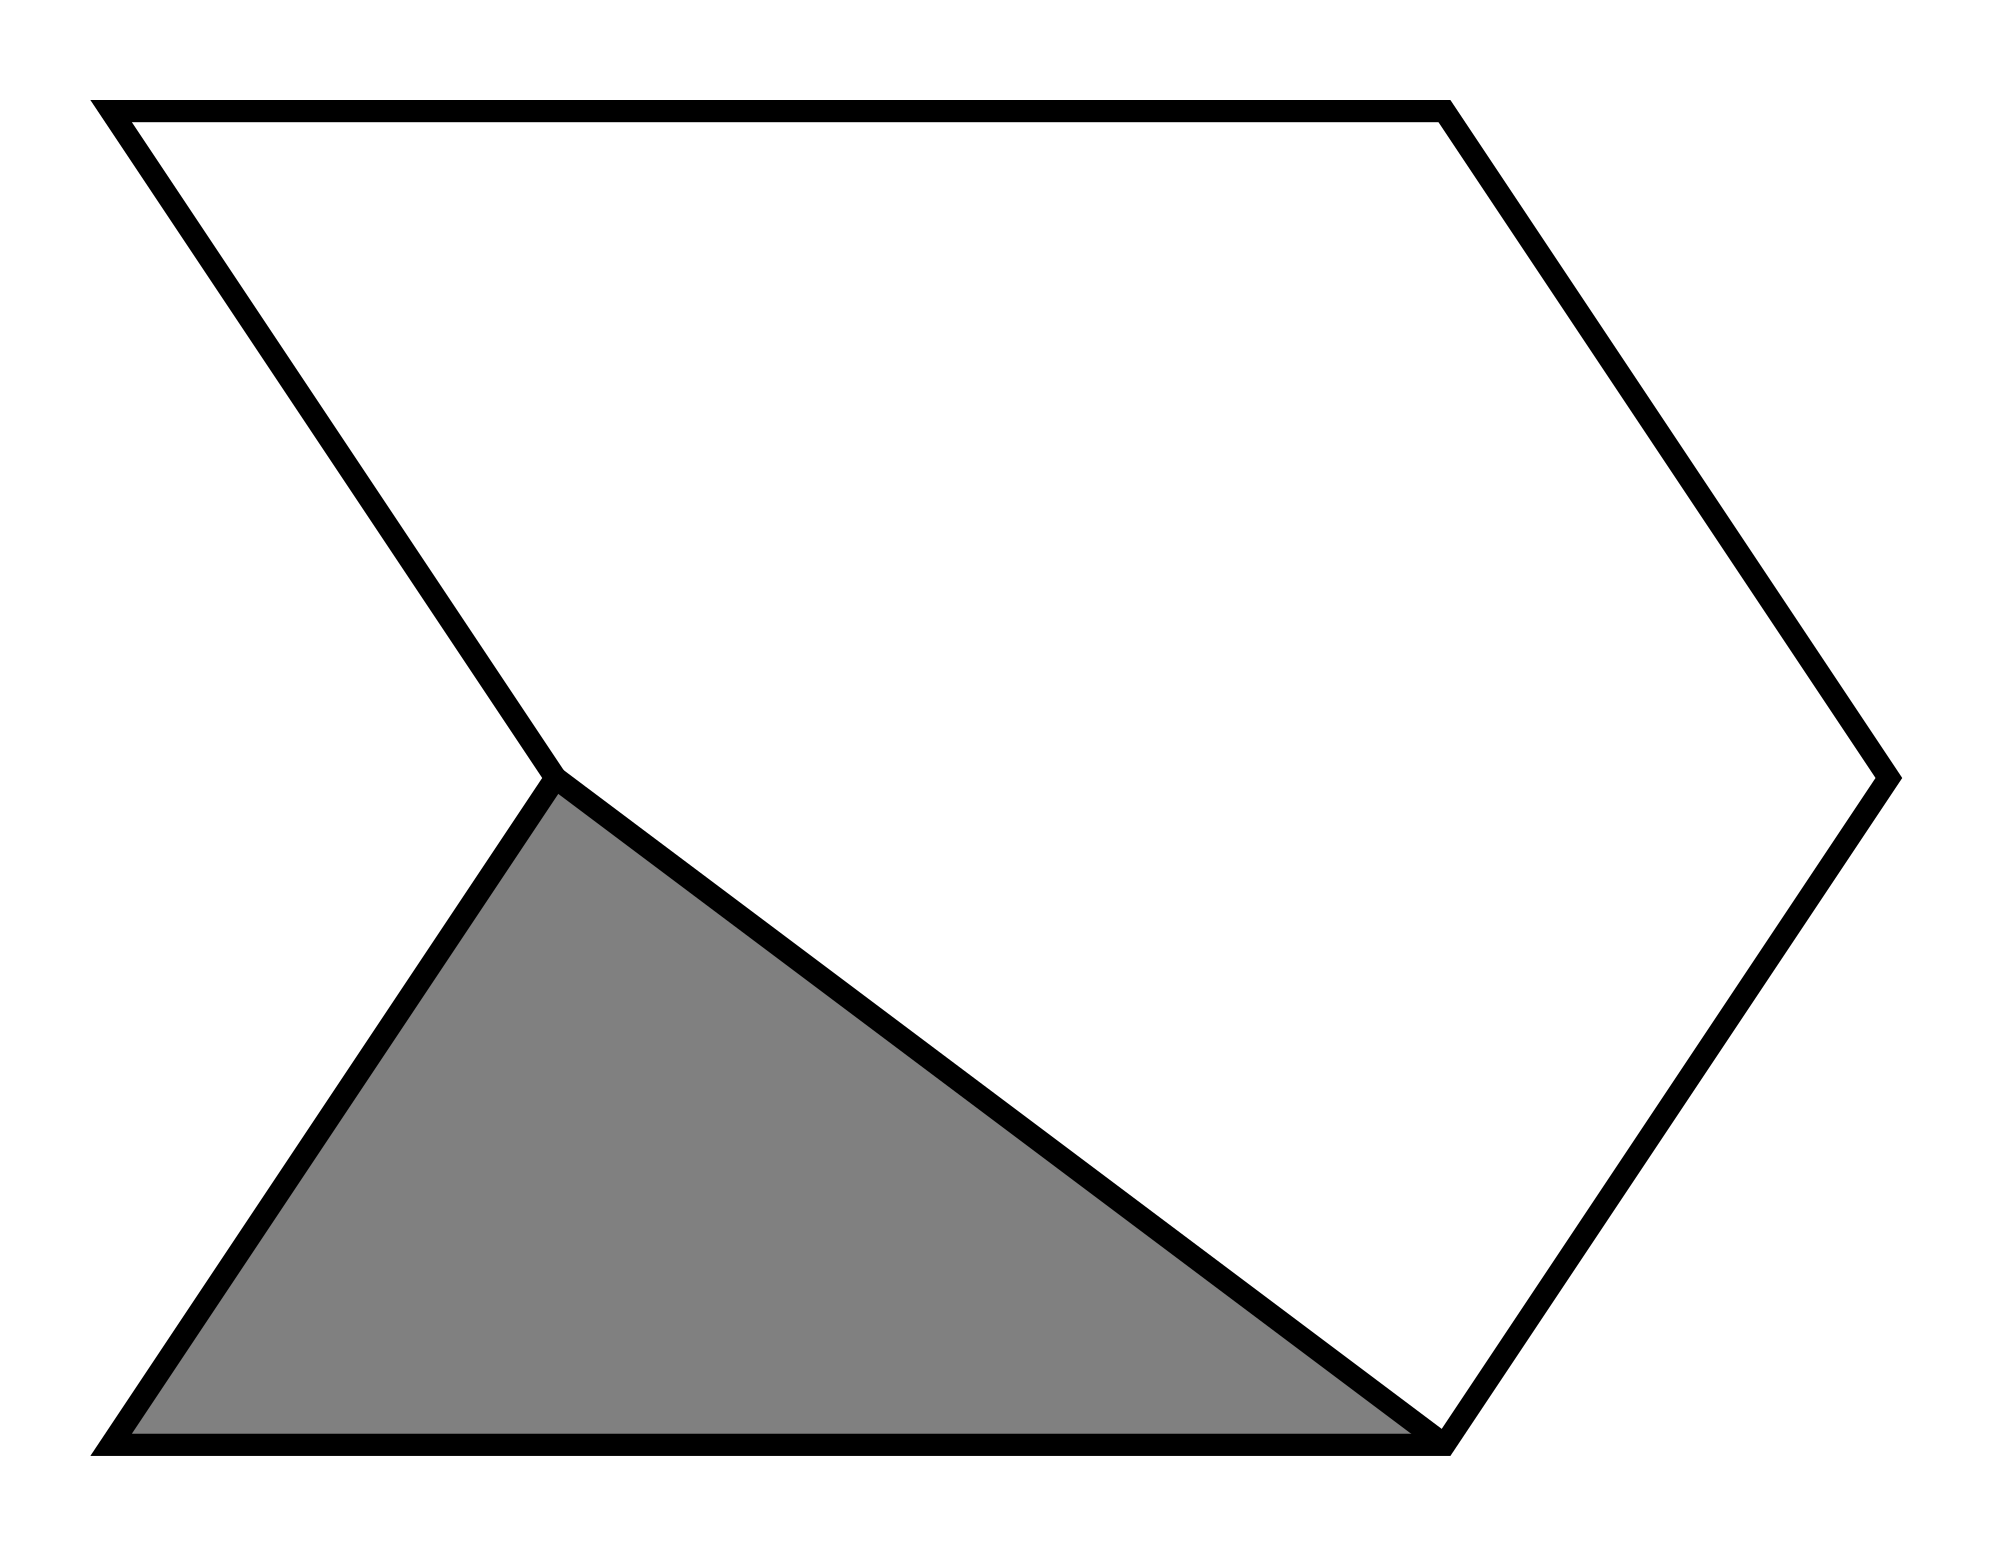 Fraction clipart figure. File in svg wikimedia